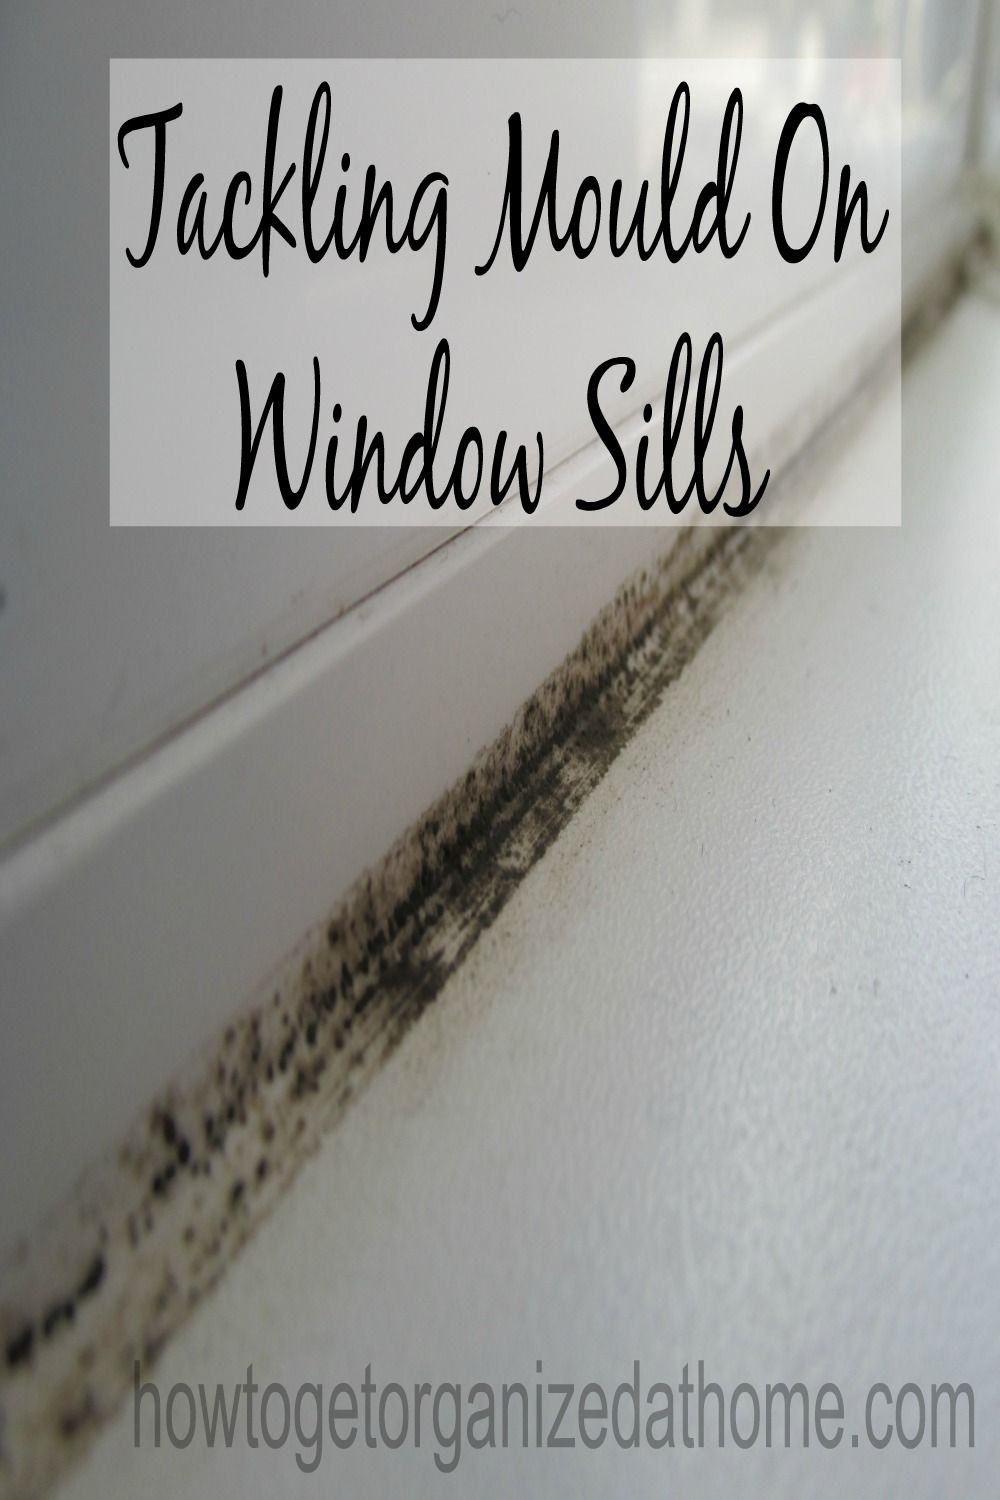 Fensterrahmen Reinigen The Best Ways For Tackling Mold On Window Sills Diy House